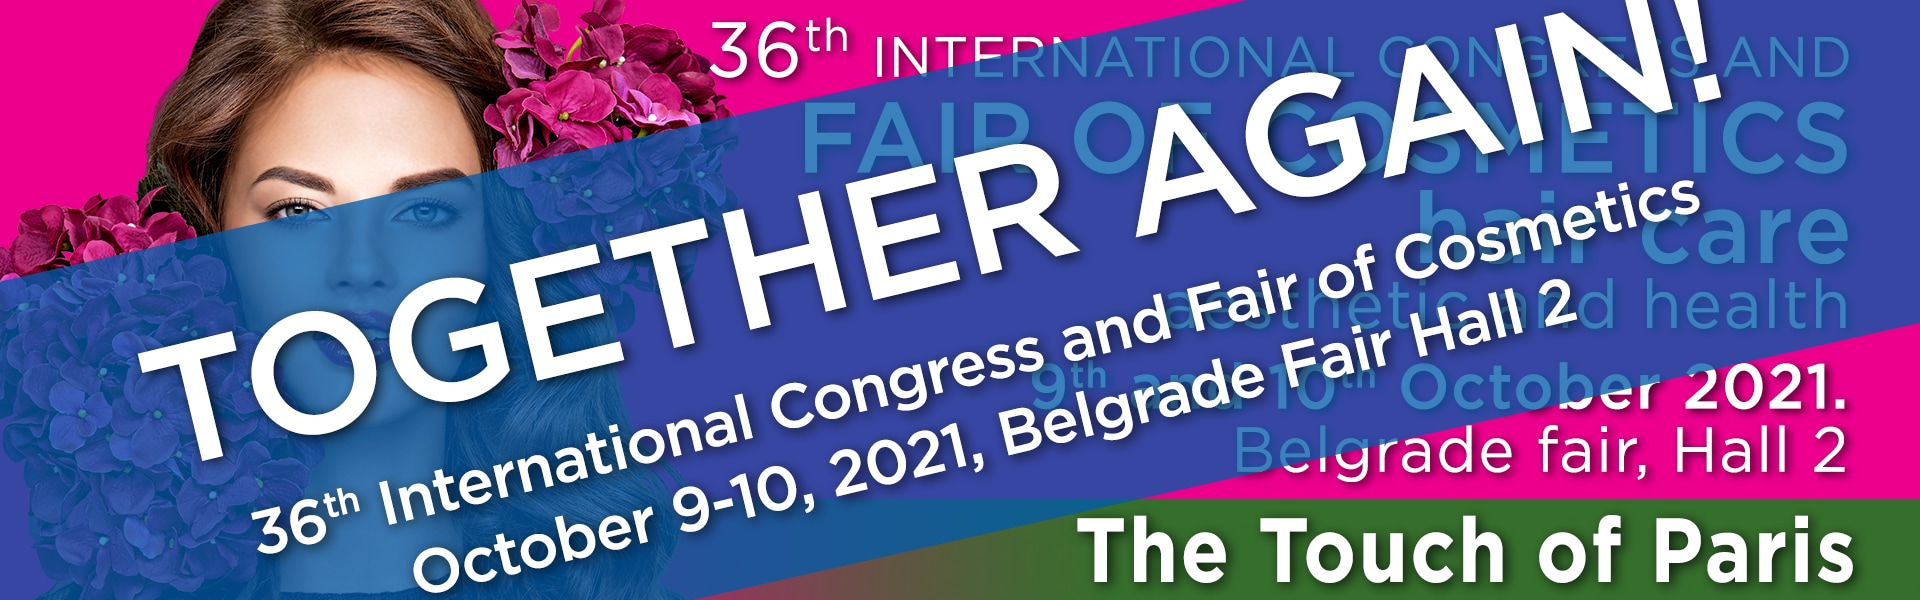 International fair and congress of cosmetics, hair care, aesthetics and health - The touch of Paris